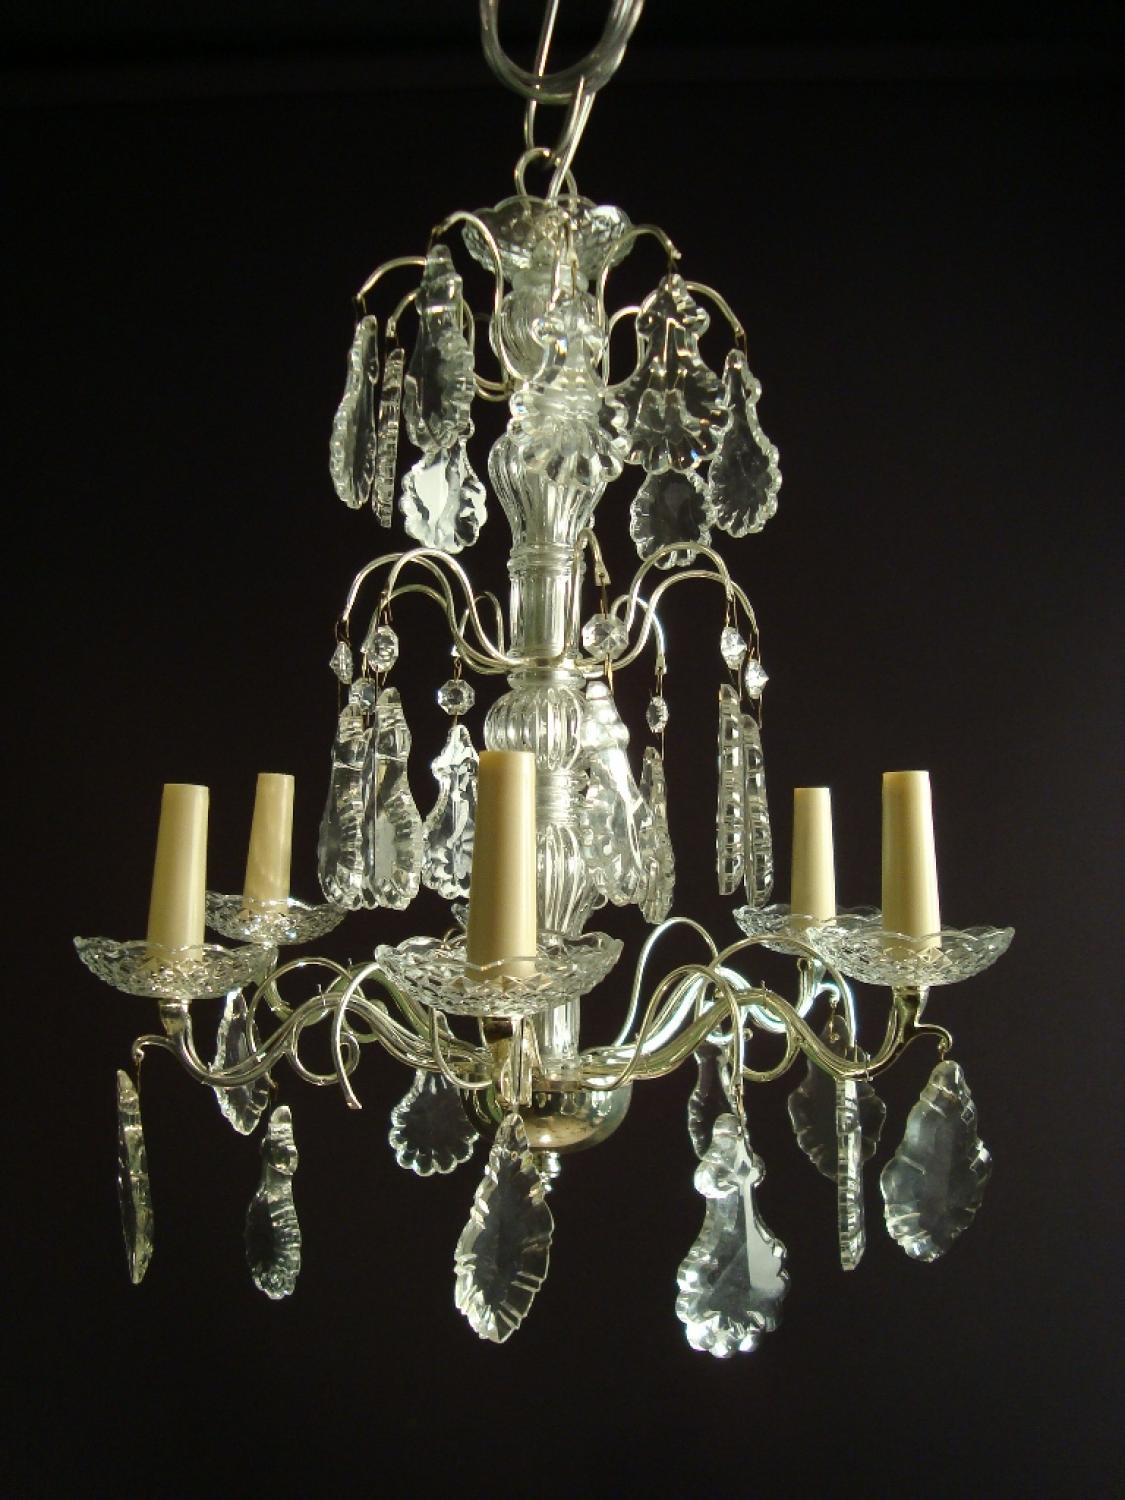 A silvered chandelier